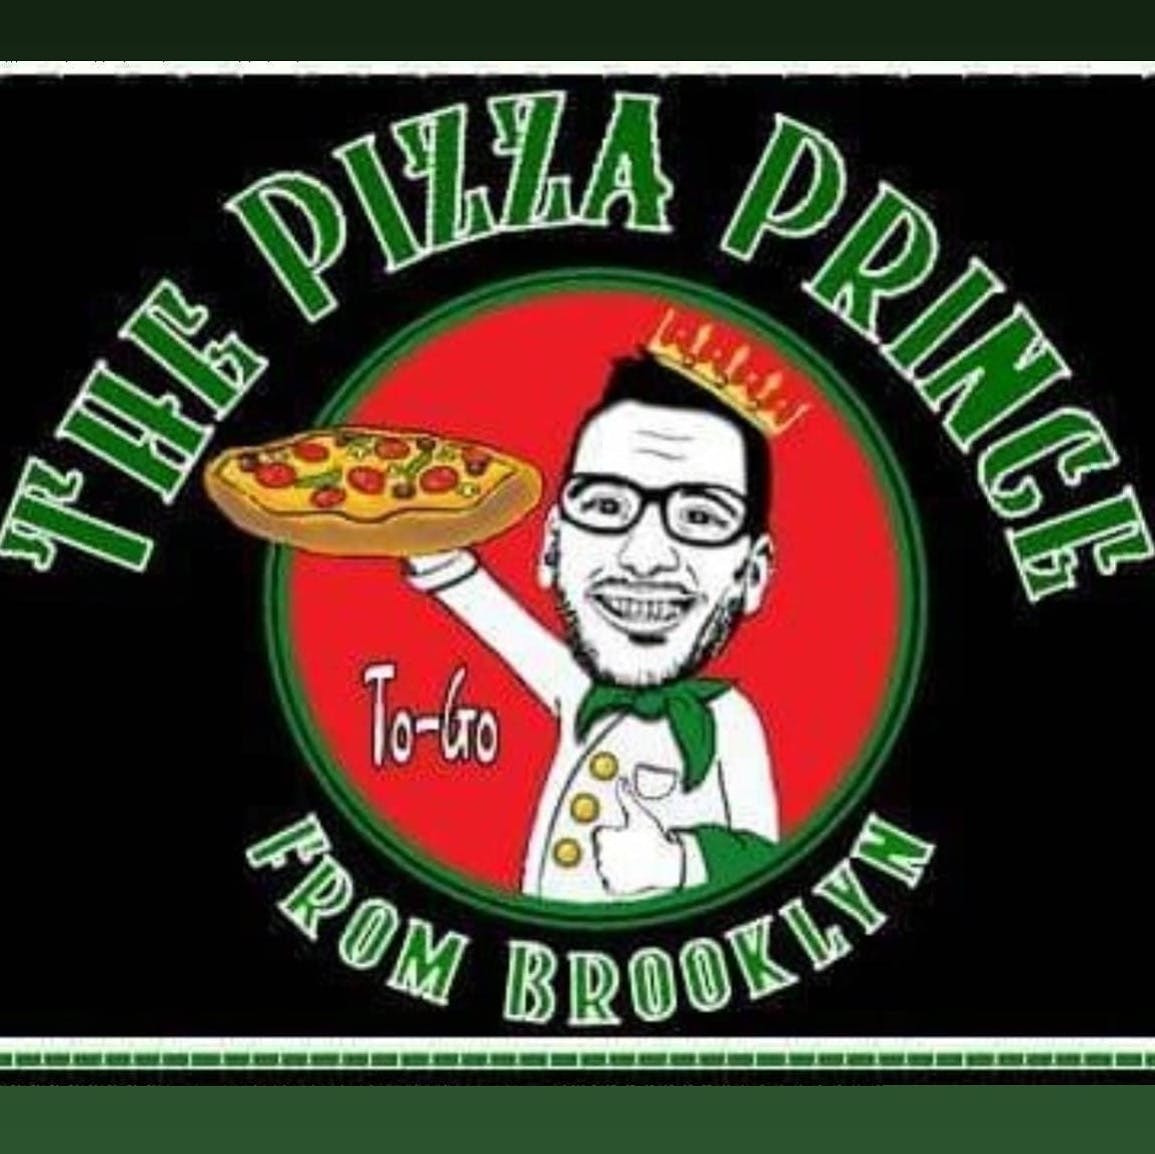 The Pizza Prince